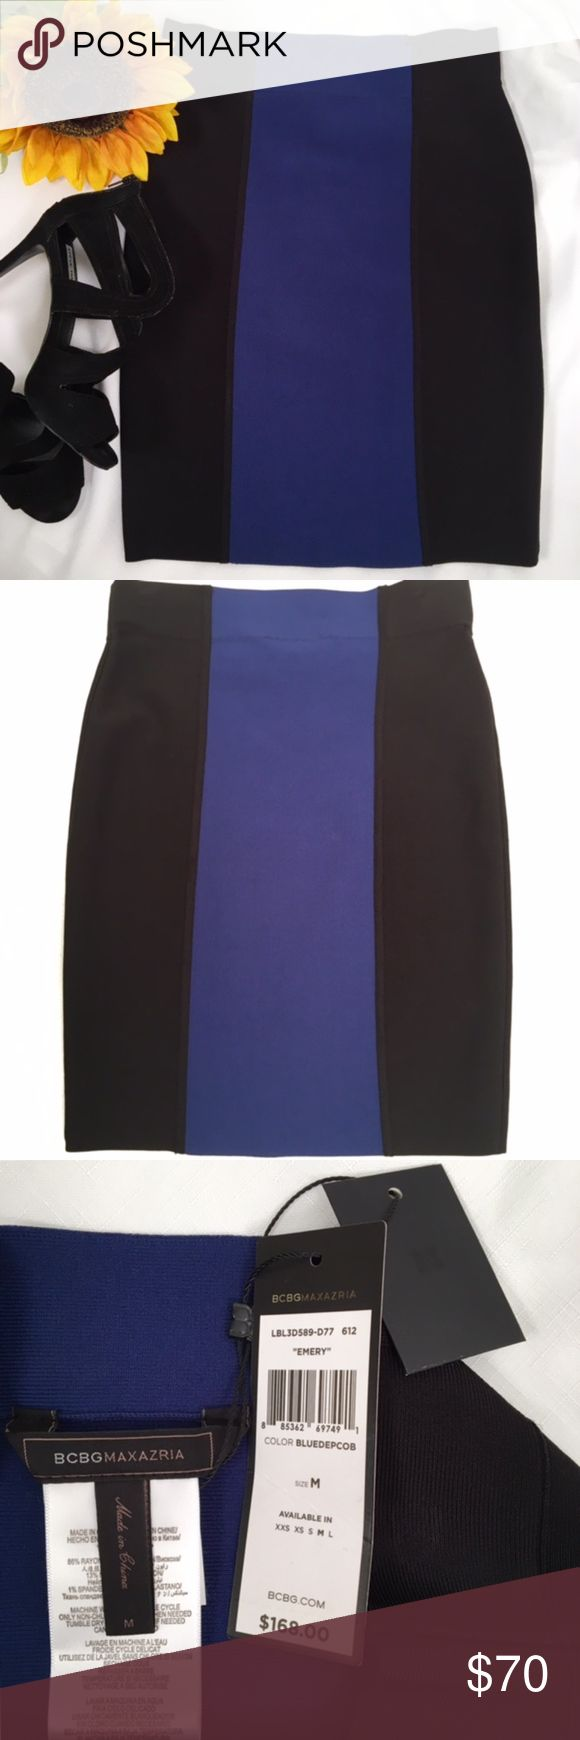 """BCBGMaxAzria Blue Black """"Emery"""" Skirt This skirt is NWT, and in PRISTINE condition... Never worn. The picture with the  is the front of the skirt, and without the flower is the back. The closeup shot is of the hemline. These pull-on skirts have stretch in them but they are not bandage style fabric. Wear it with a black blouse or a blue top (SEE my T Tahari listing for a top that matches the blue color in the skirt.) No zipper/hooks/buttons. Easy to wear & pack!   smoking/pets.  Measure…"""